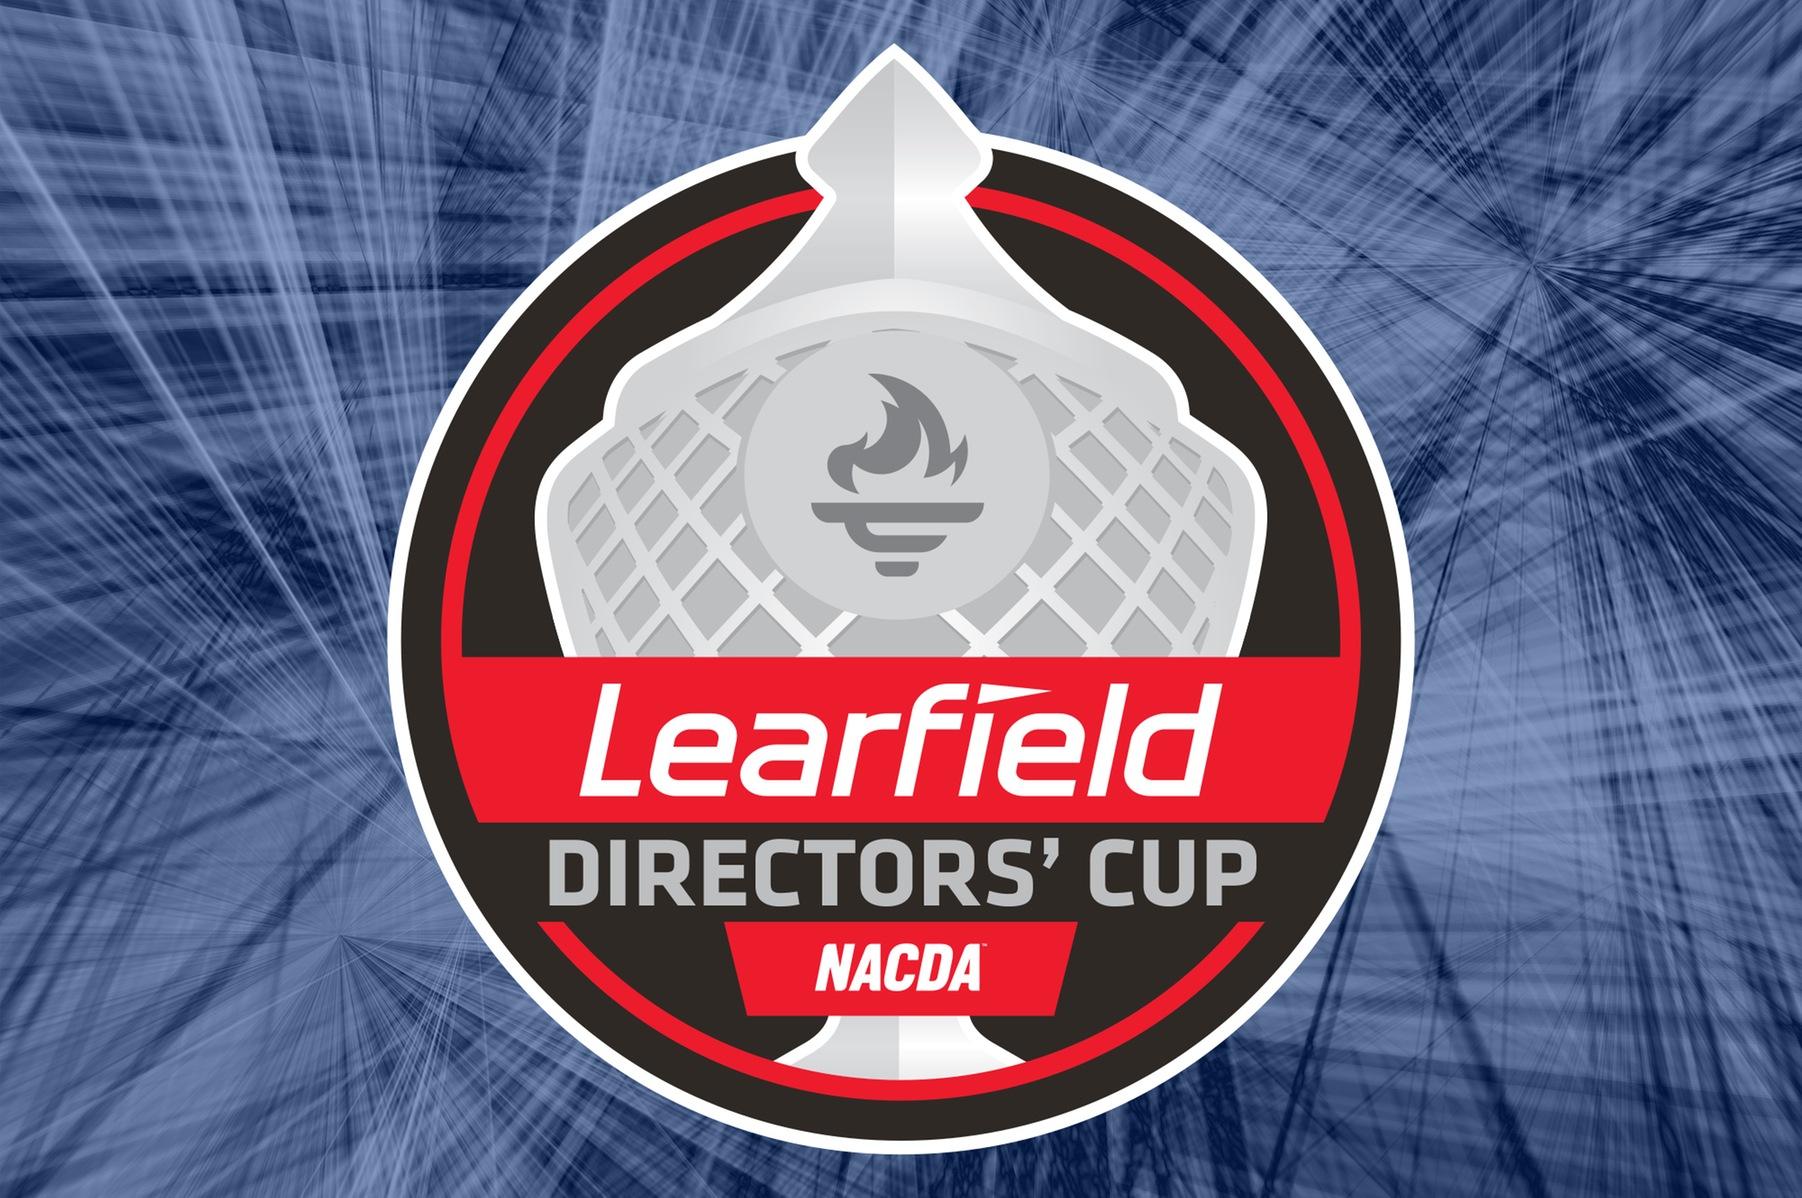 Learfield Director's Cup Logo